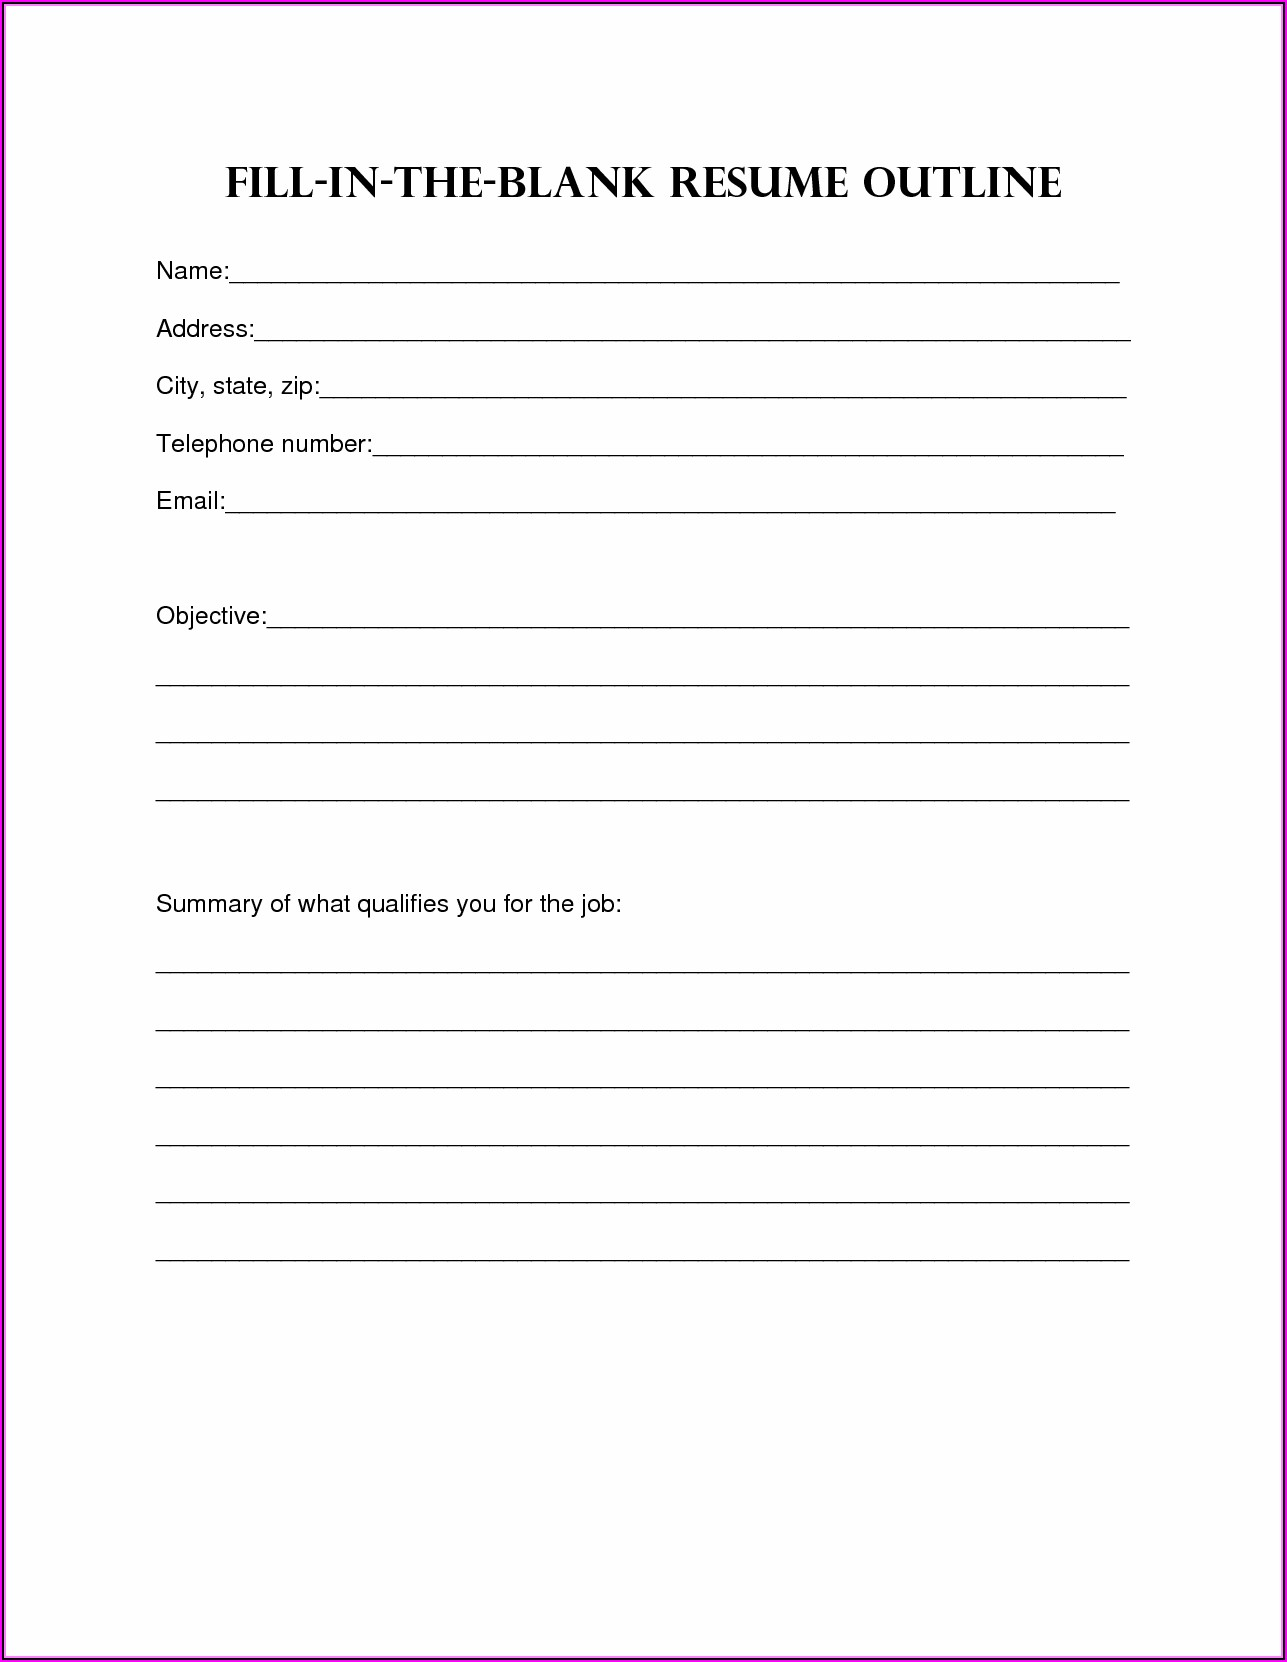 Free Resume Fill In The Blank Pdf